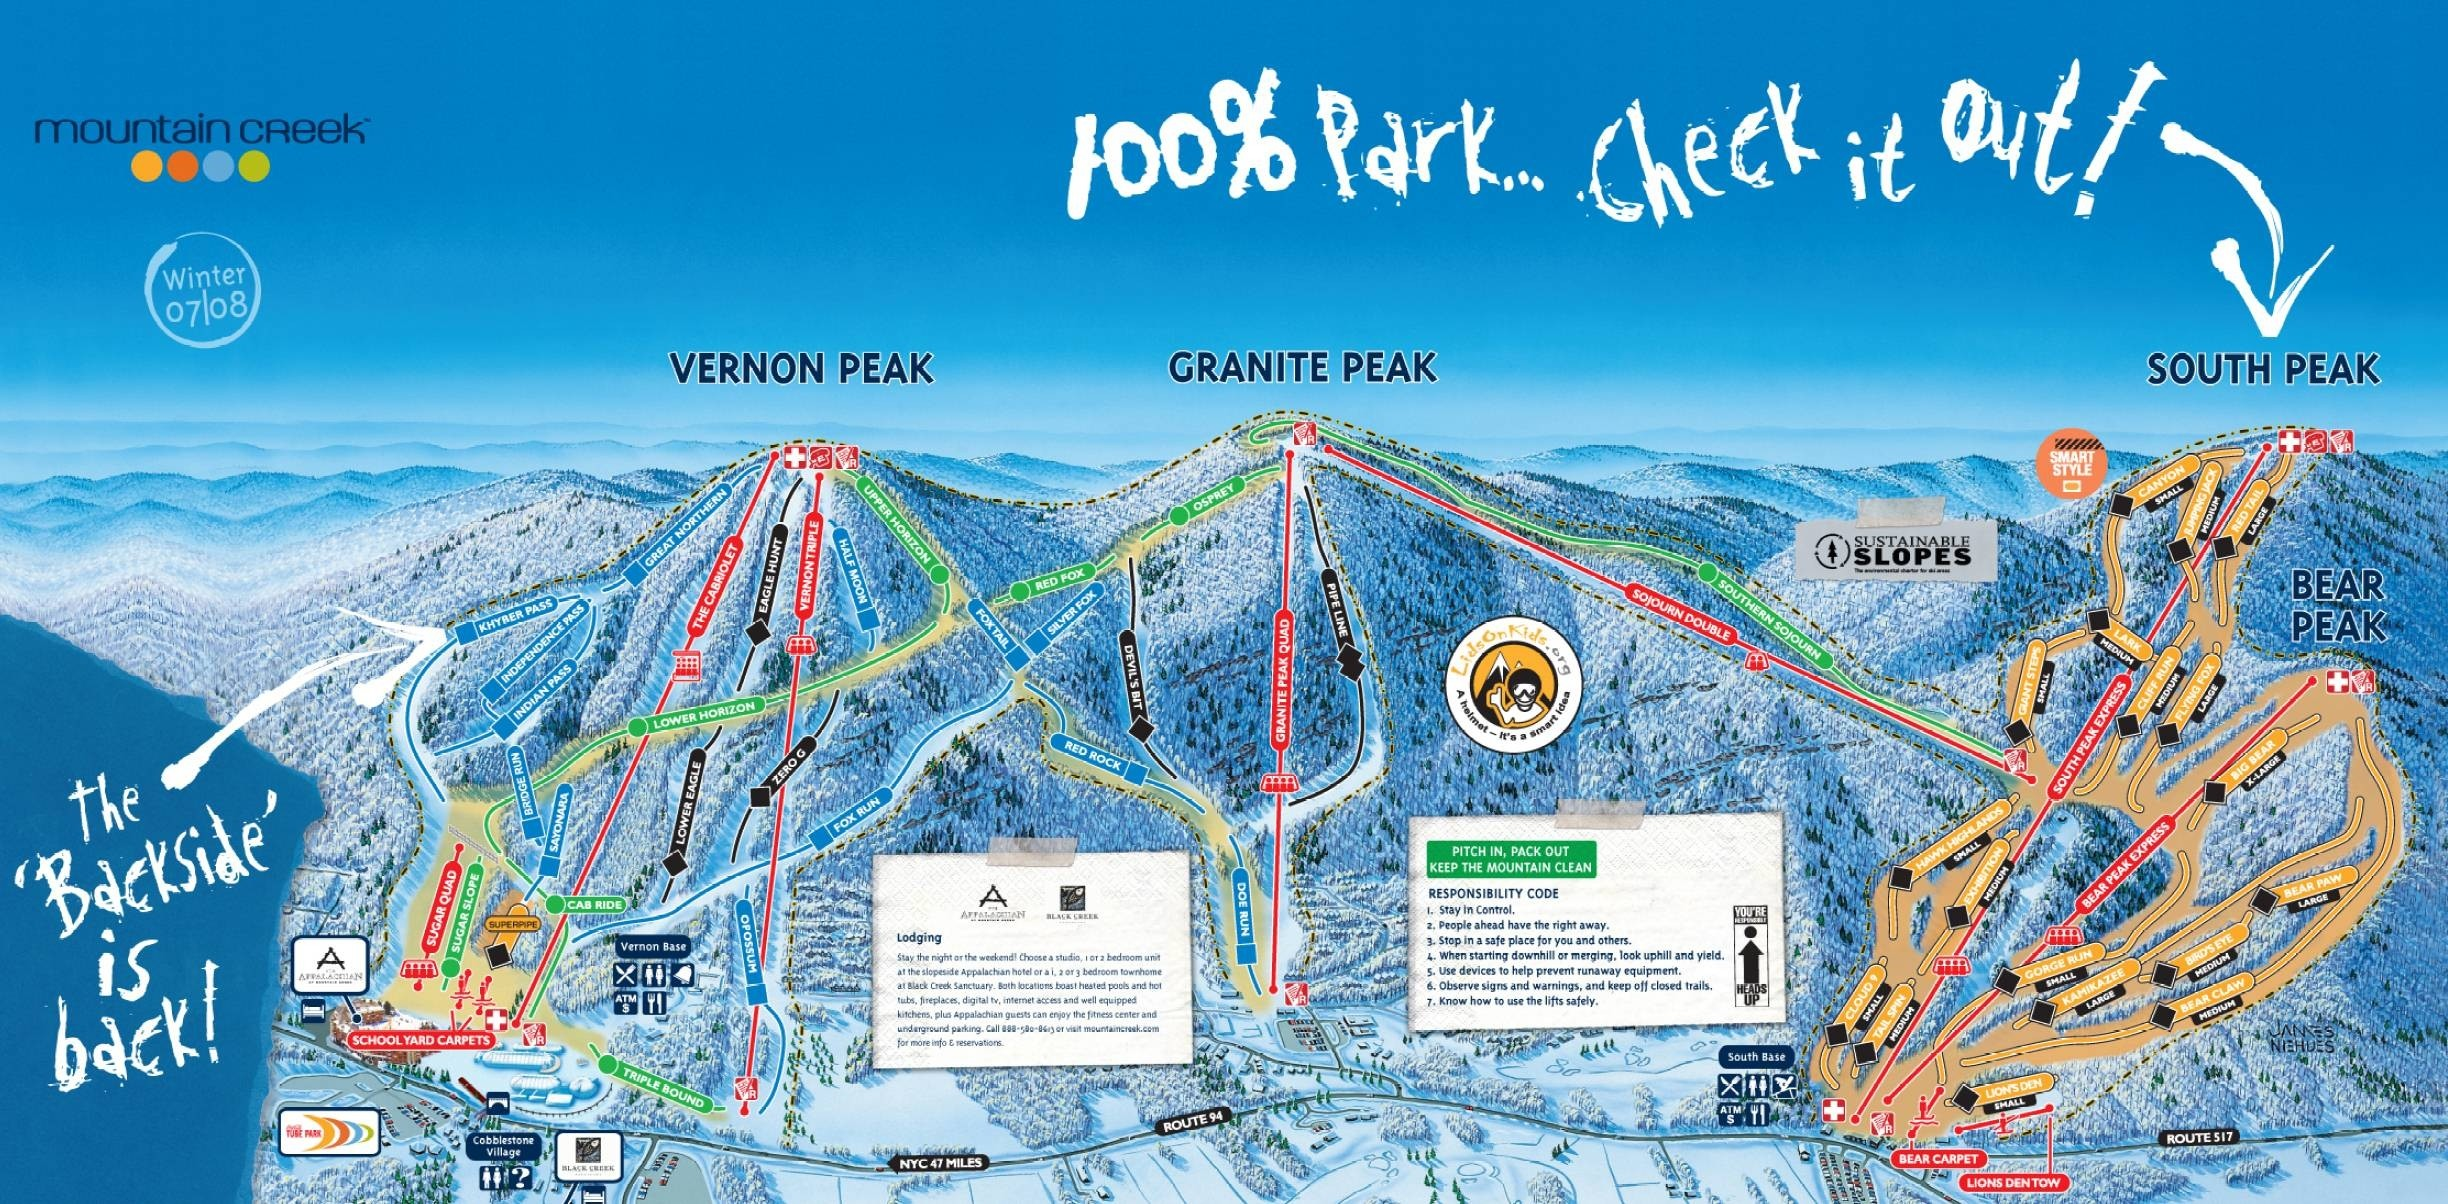 mountain creek nj • ski holiday • reviews • skiing